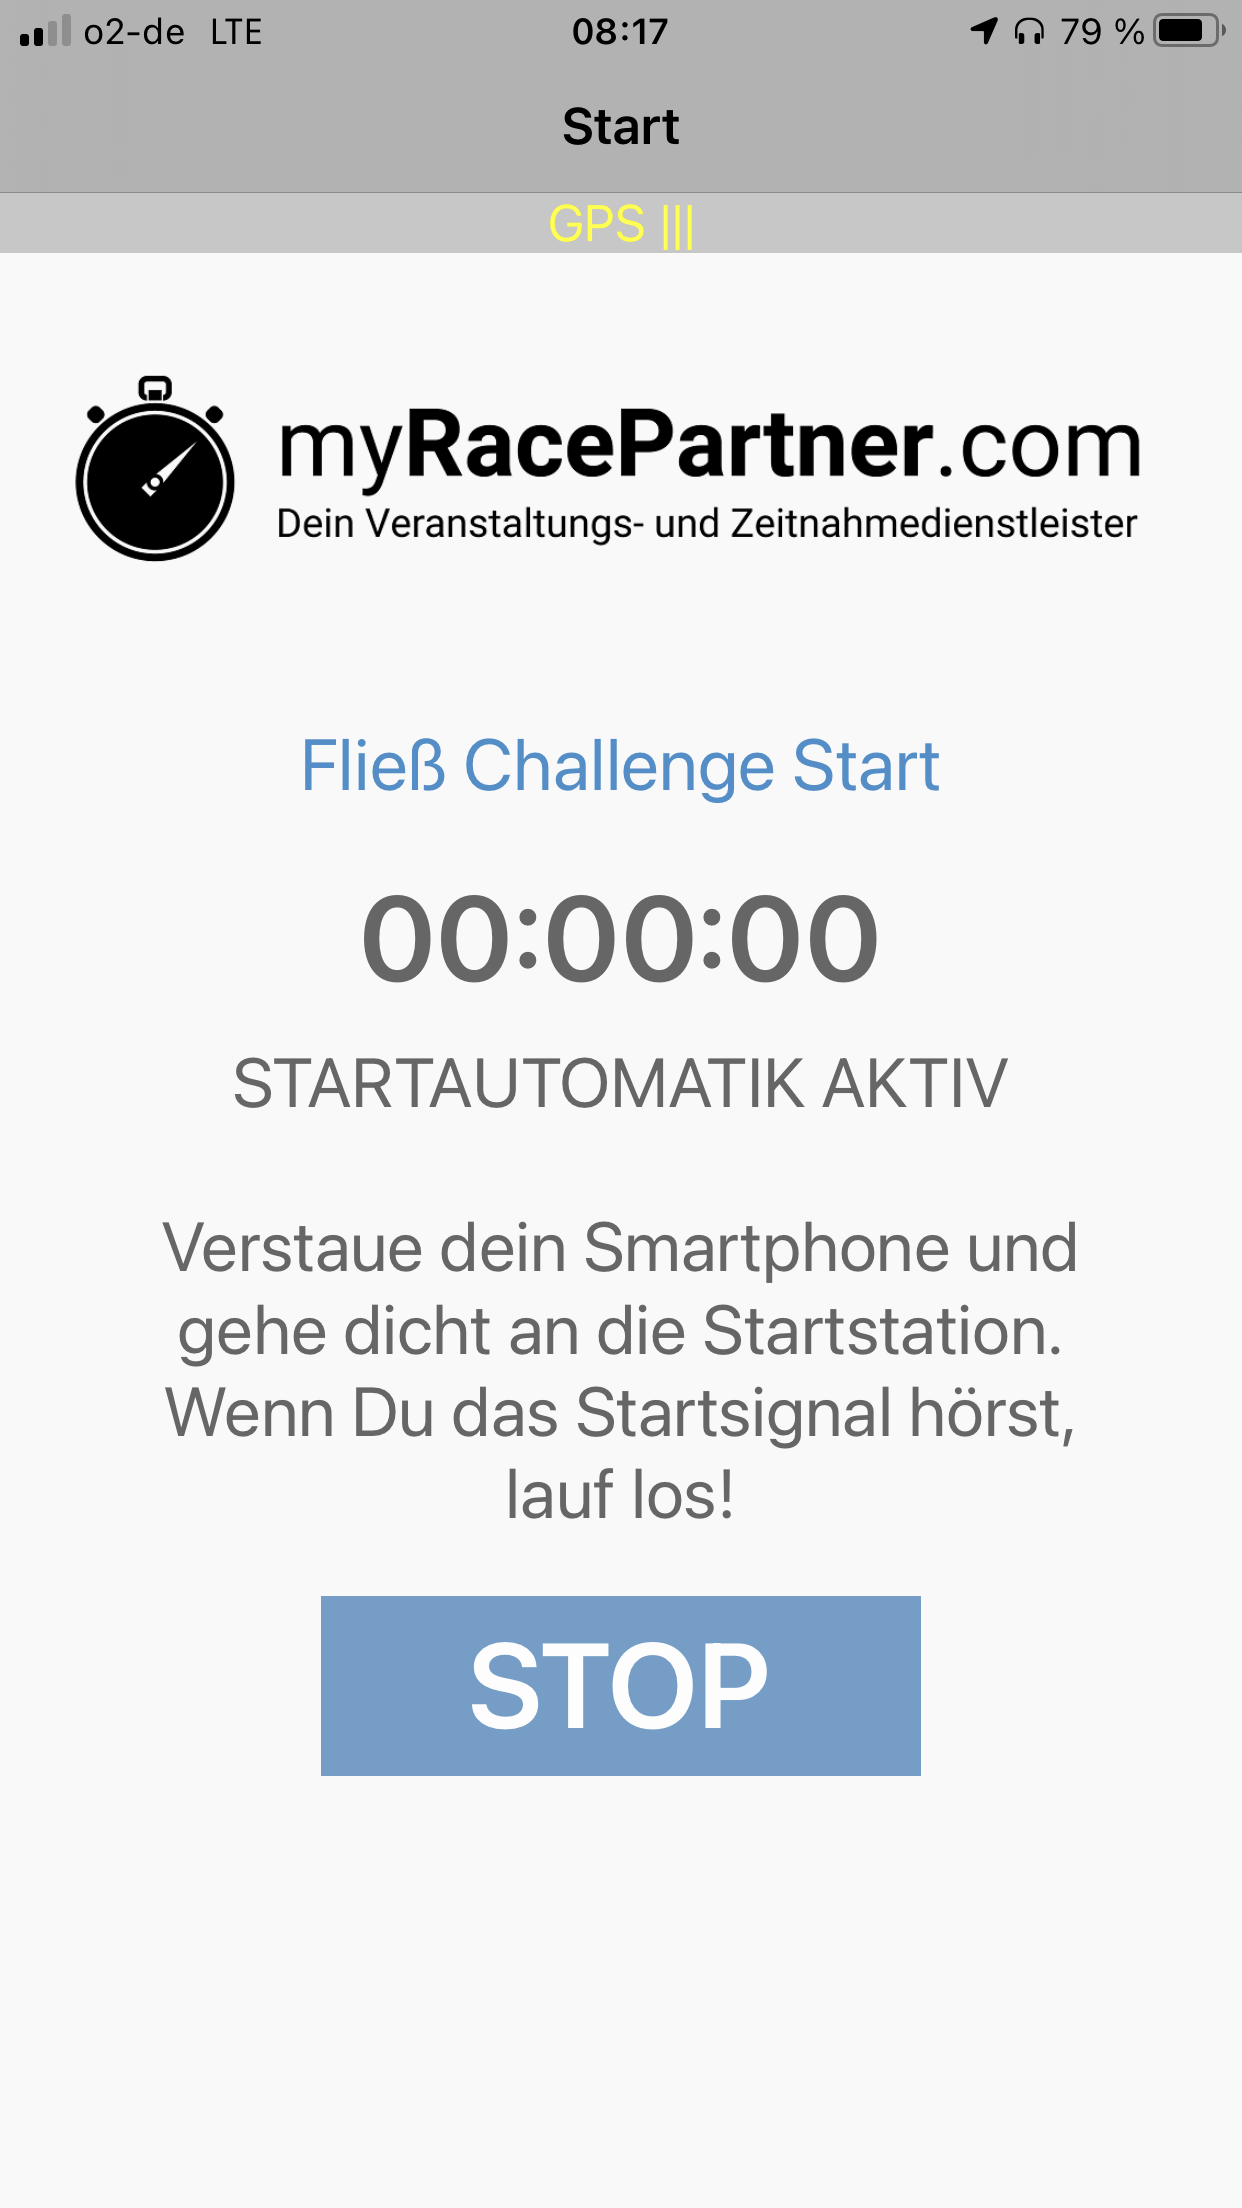 myRacePartner.com - Die App am Start 03